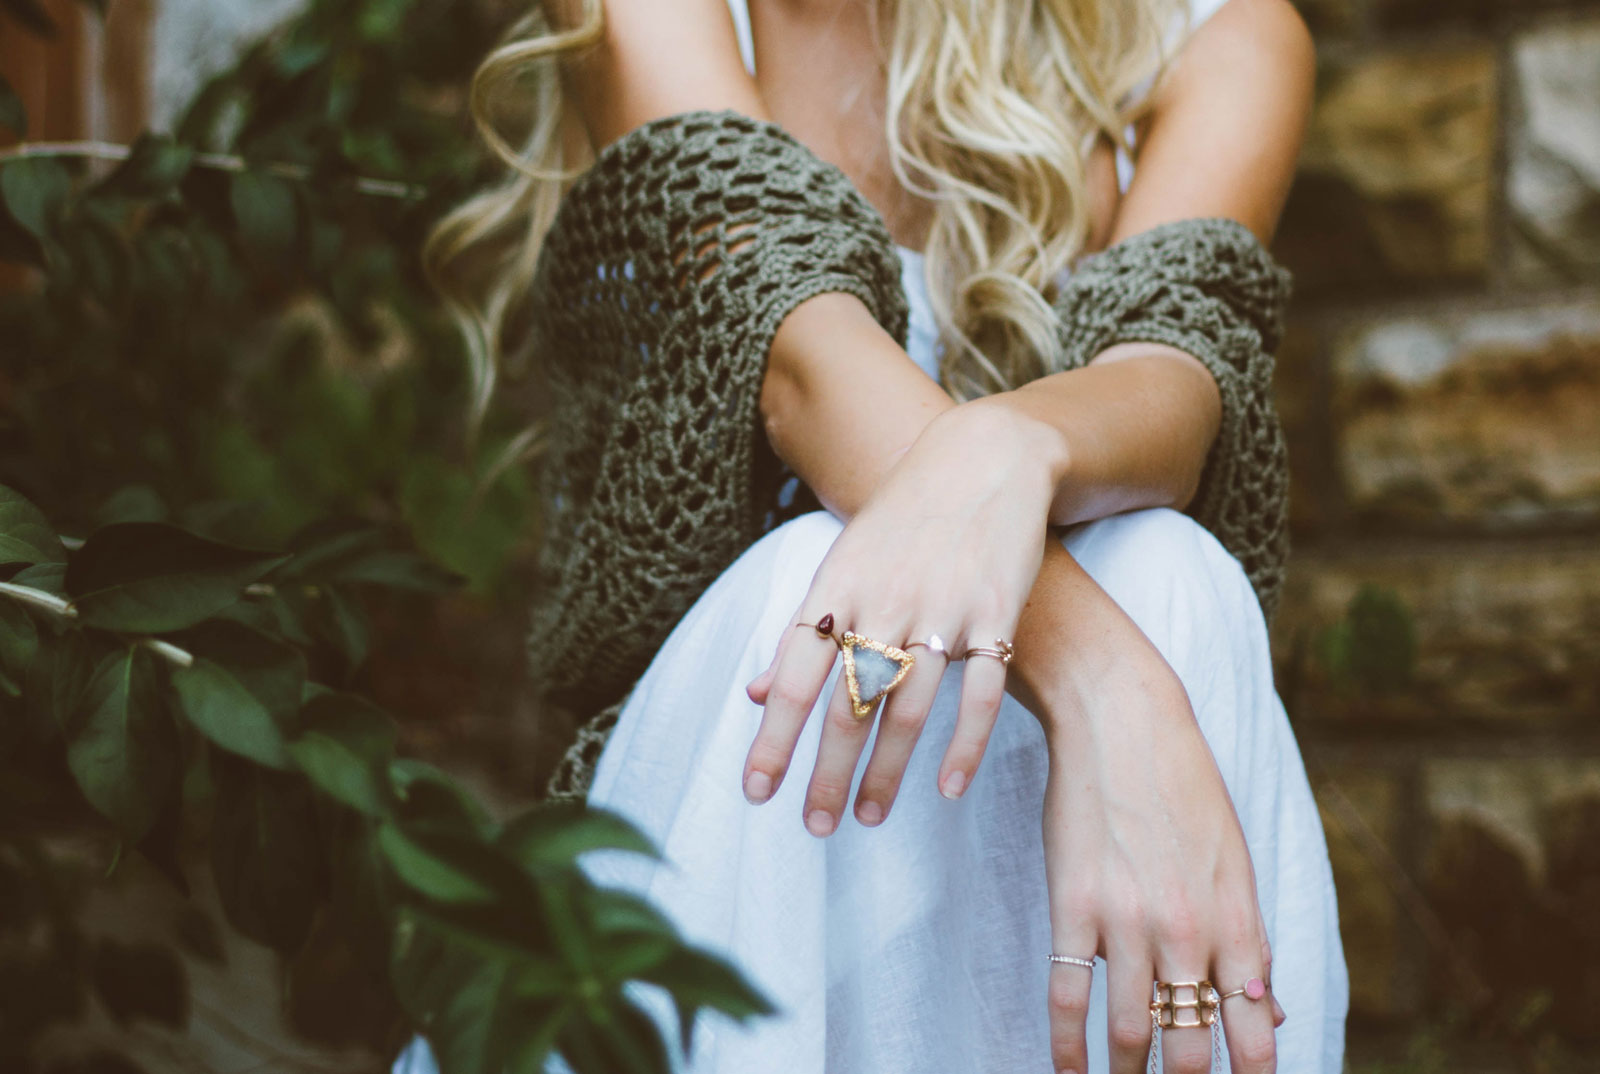 Hands With Rings | Does Costume Jewelry Really Turn Your Skin Green?